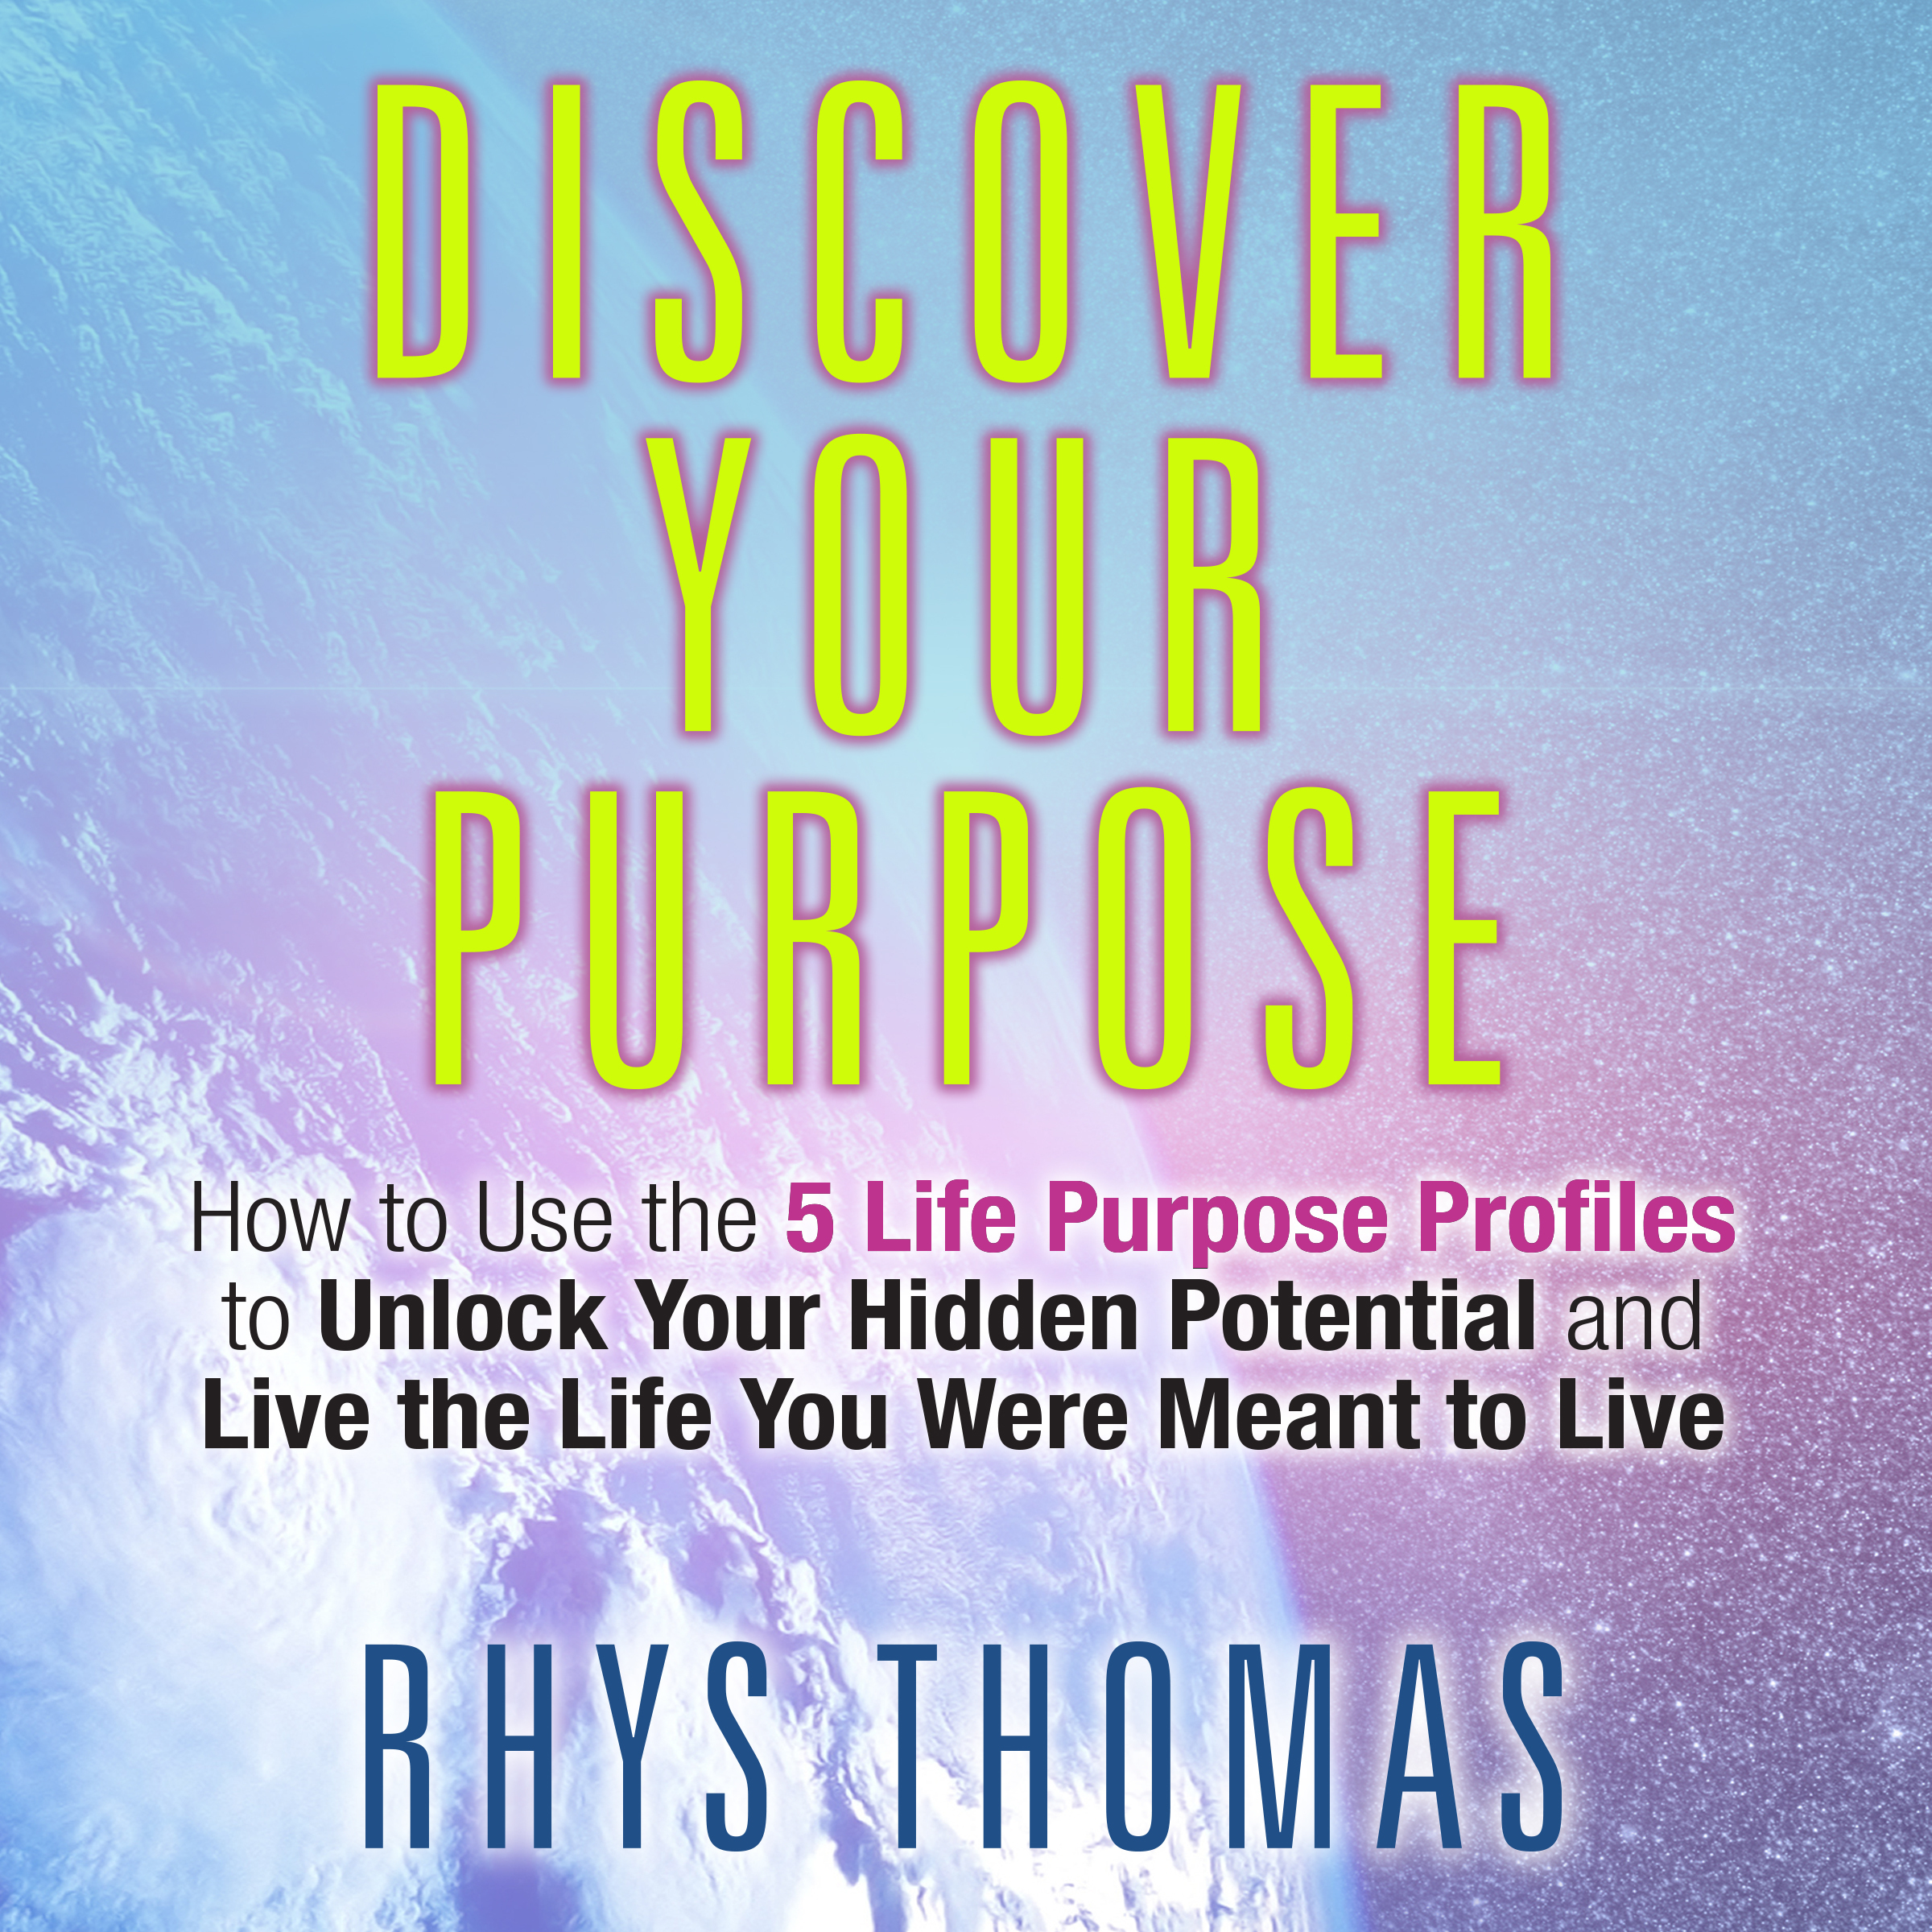 Printable Discover Your Purpose: How to Use the 5 Life Purpose Profiles to Unlock Your Hidden Potential and Live the Life You Were Meant to Live Audiobook Cover Art